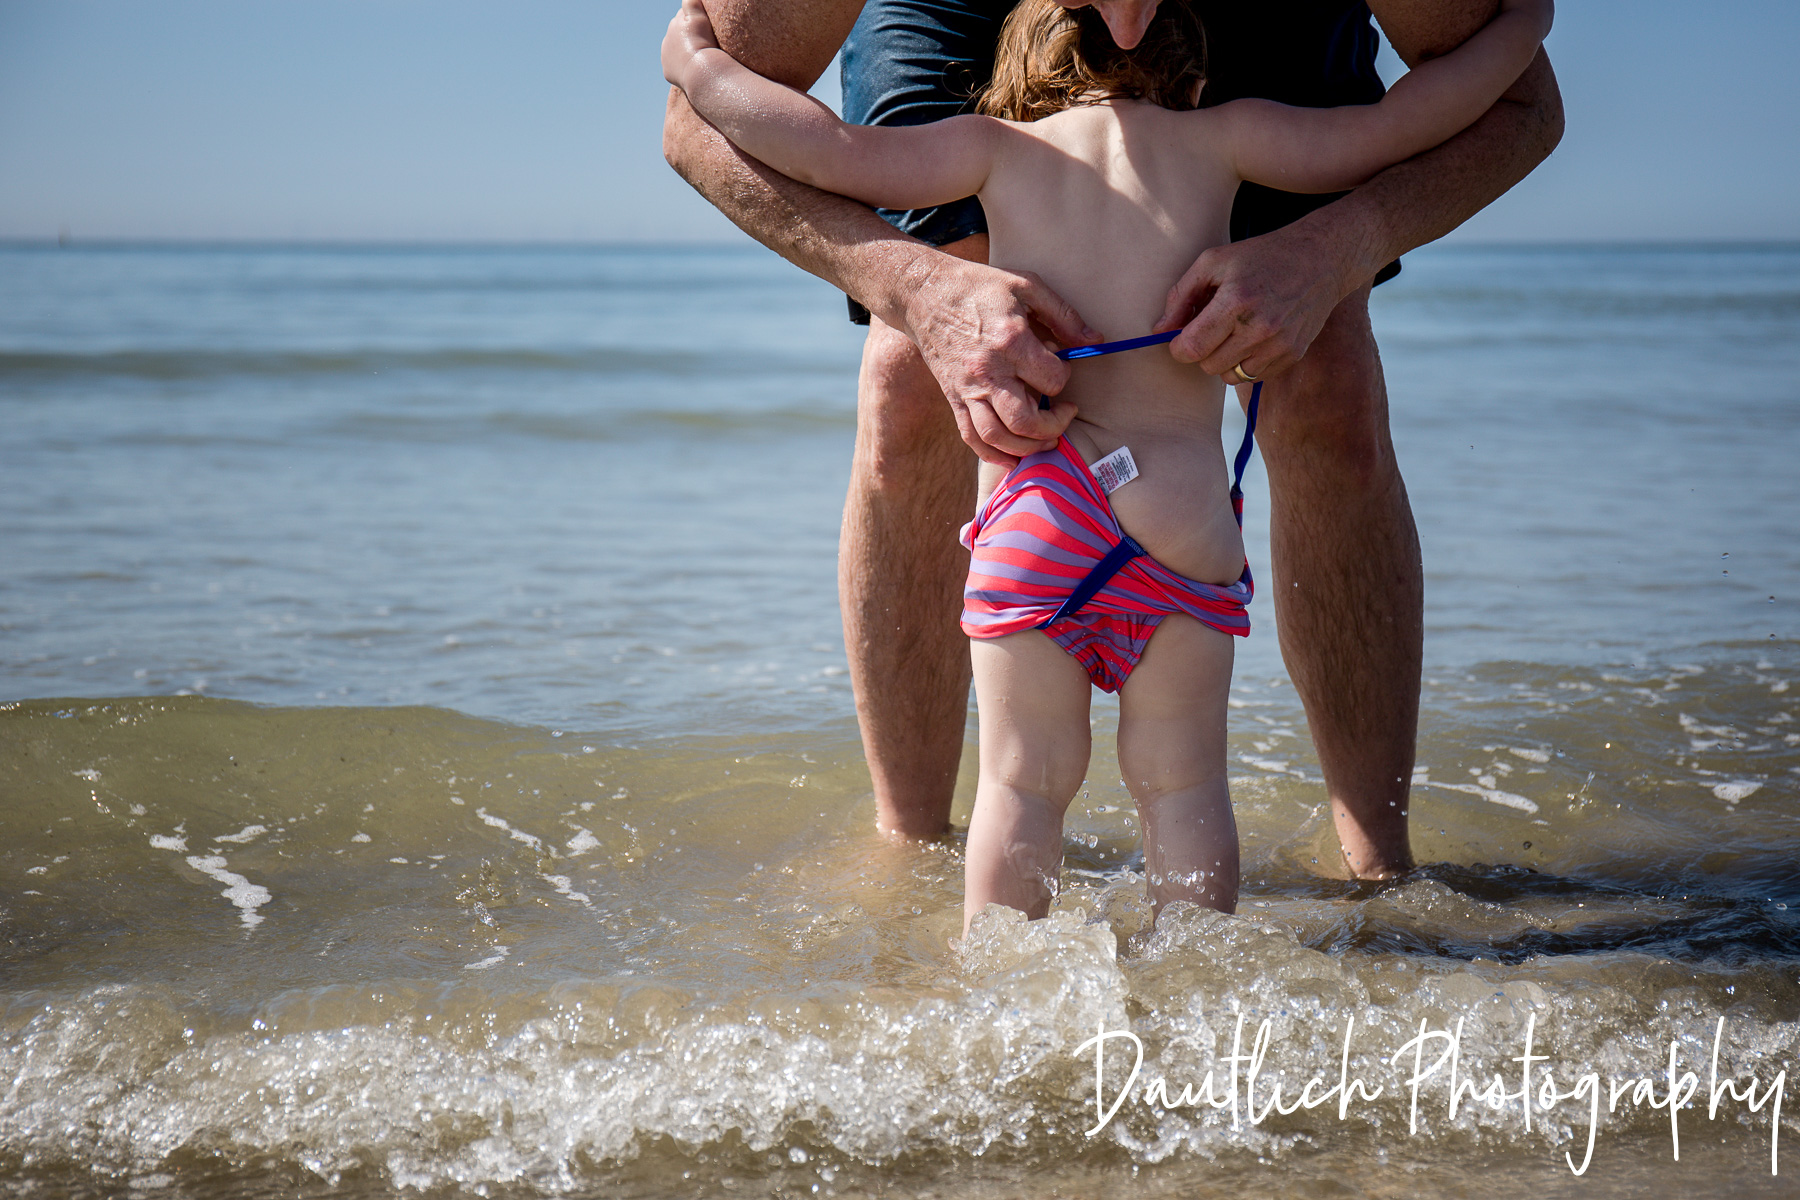 Nick is pulling Hazel's swimsuit up in the cold English Channel at Shoreham by Sea on a sunny day in June.